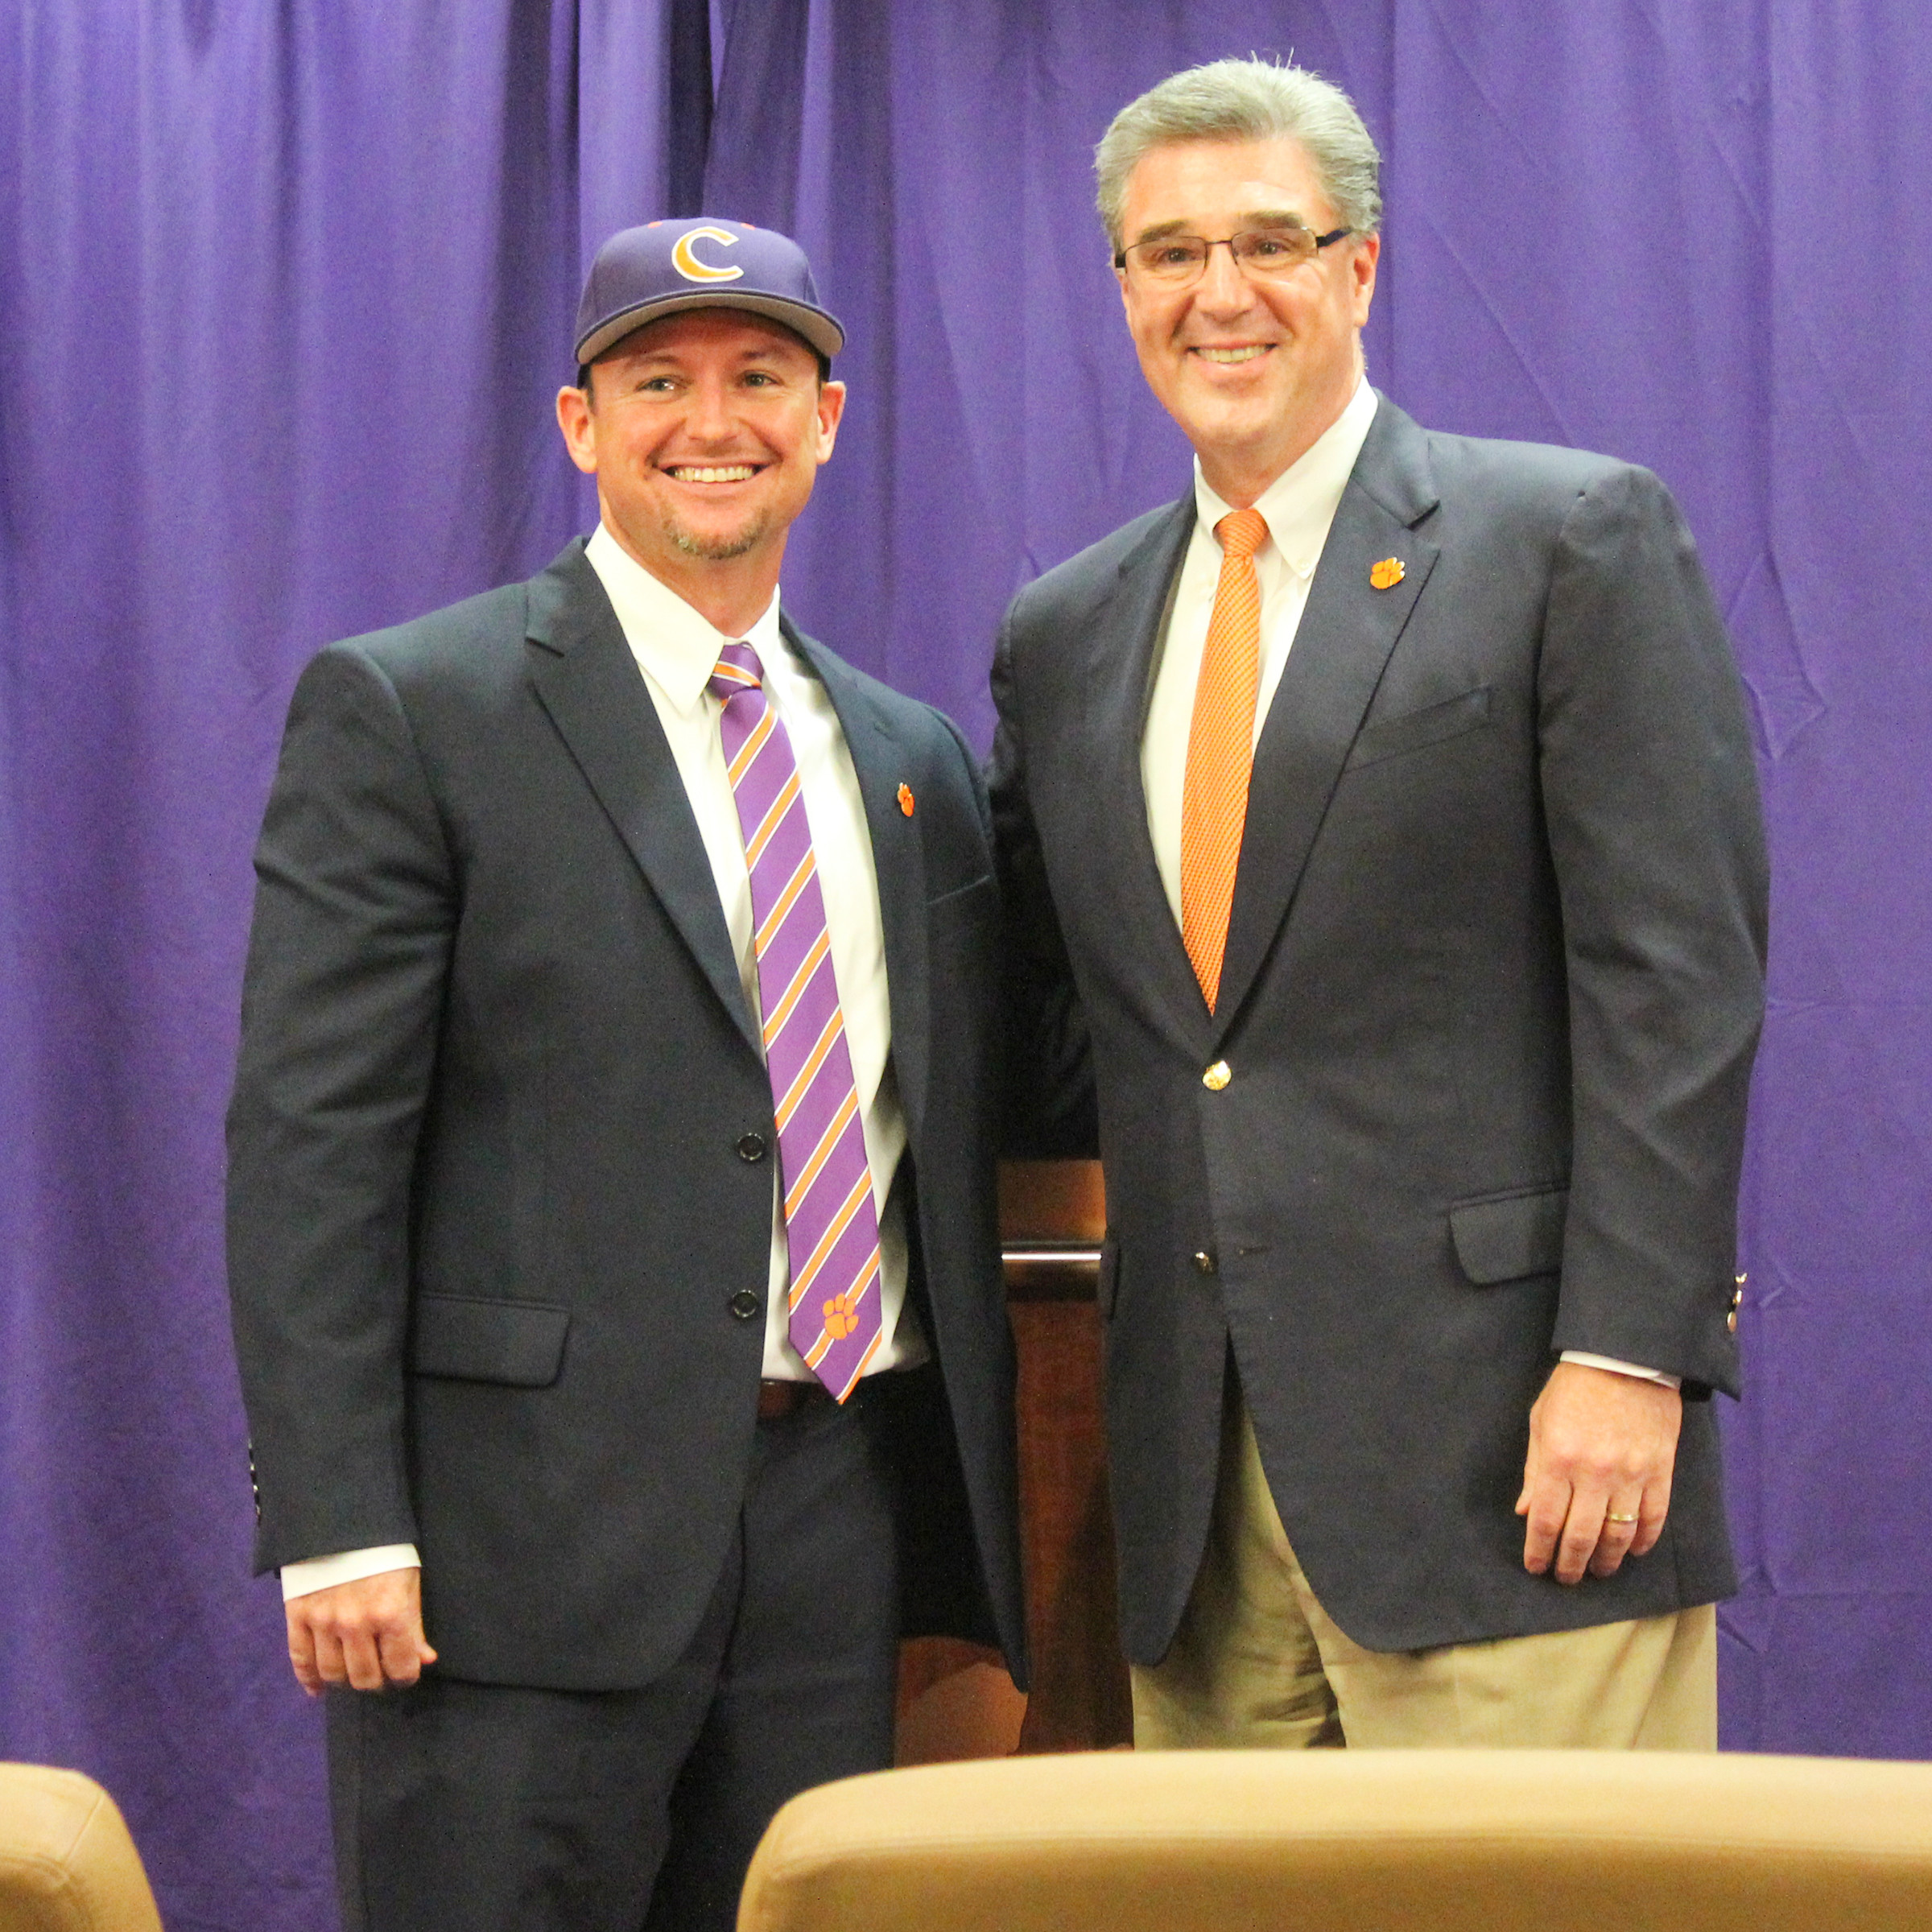 Welcome to Clemson, Monte!